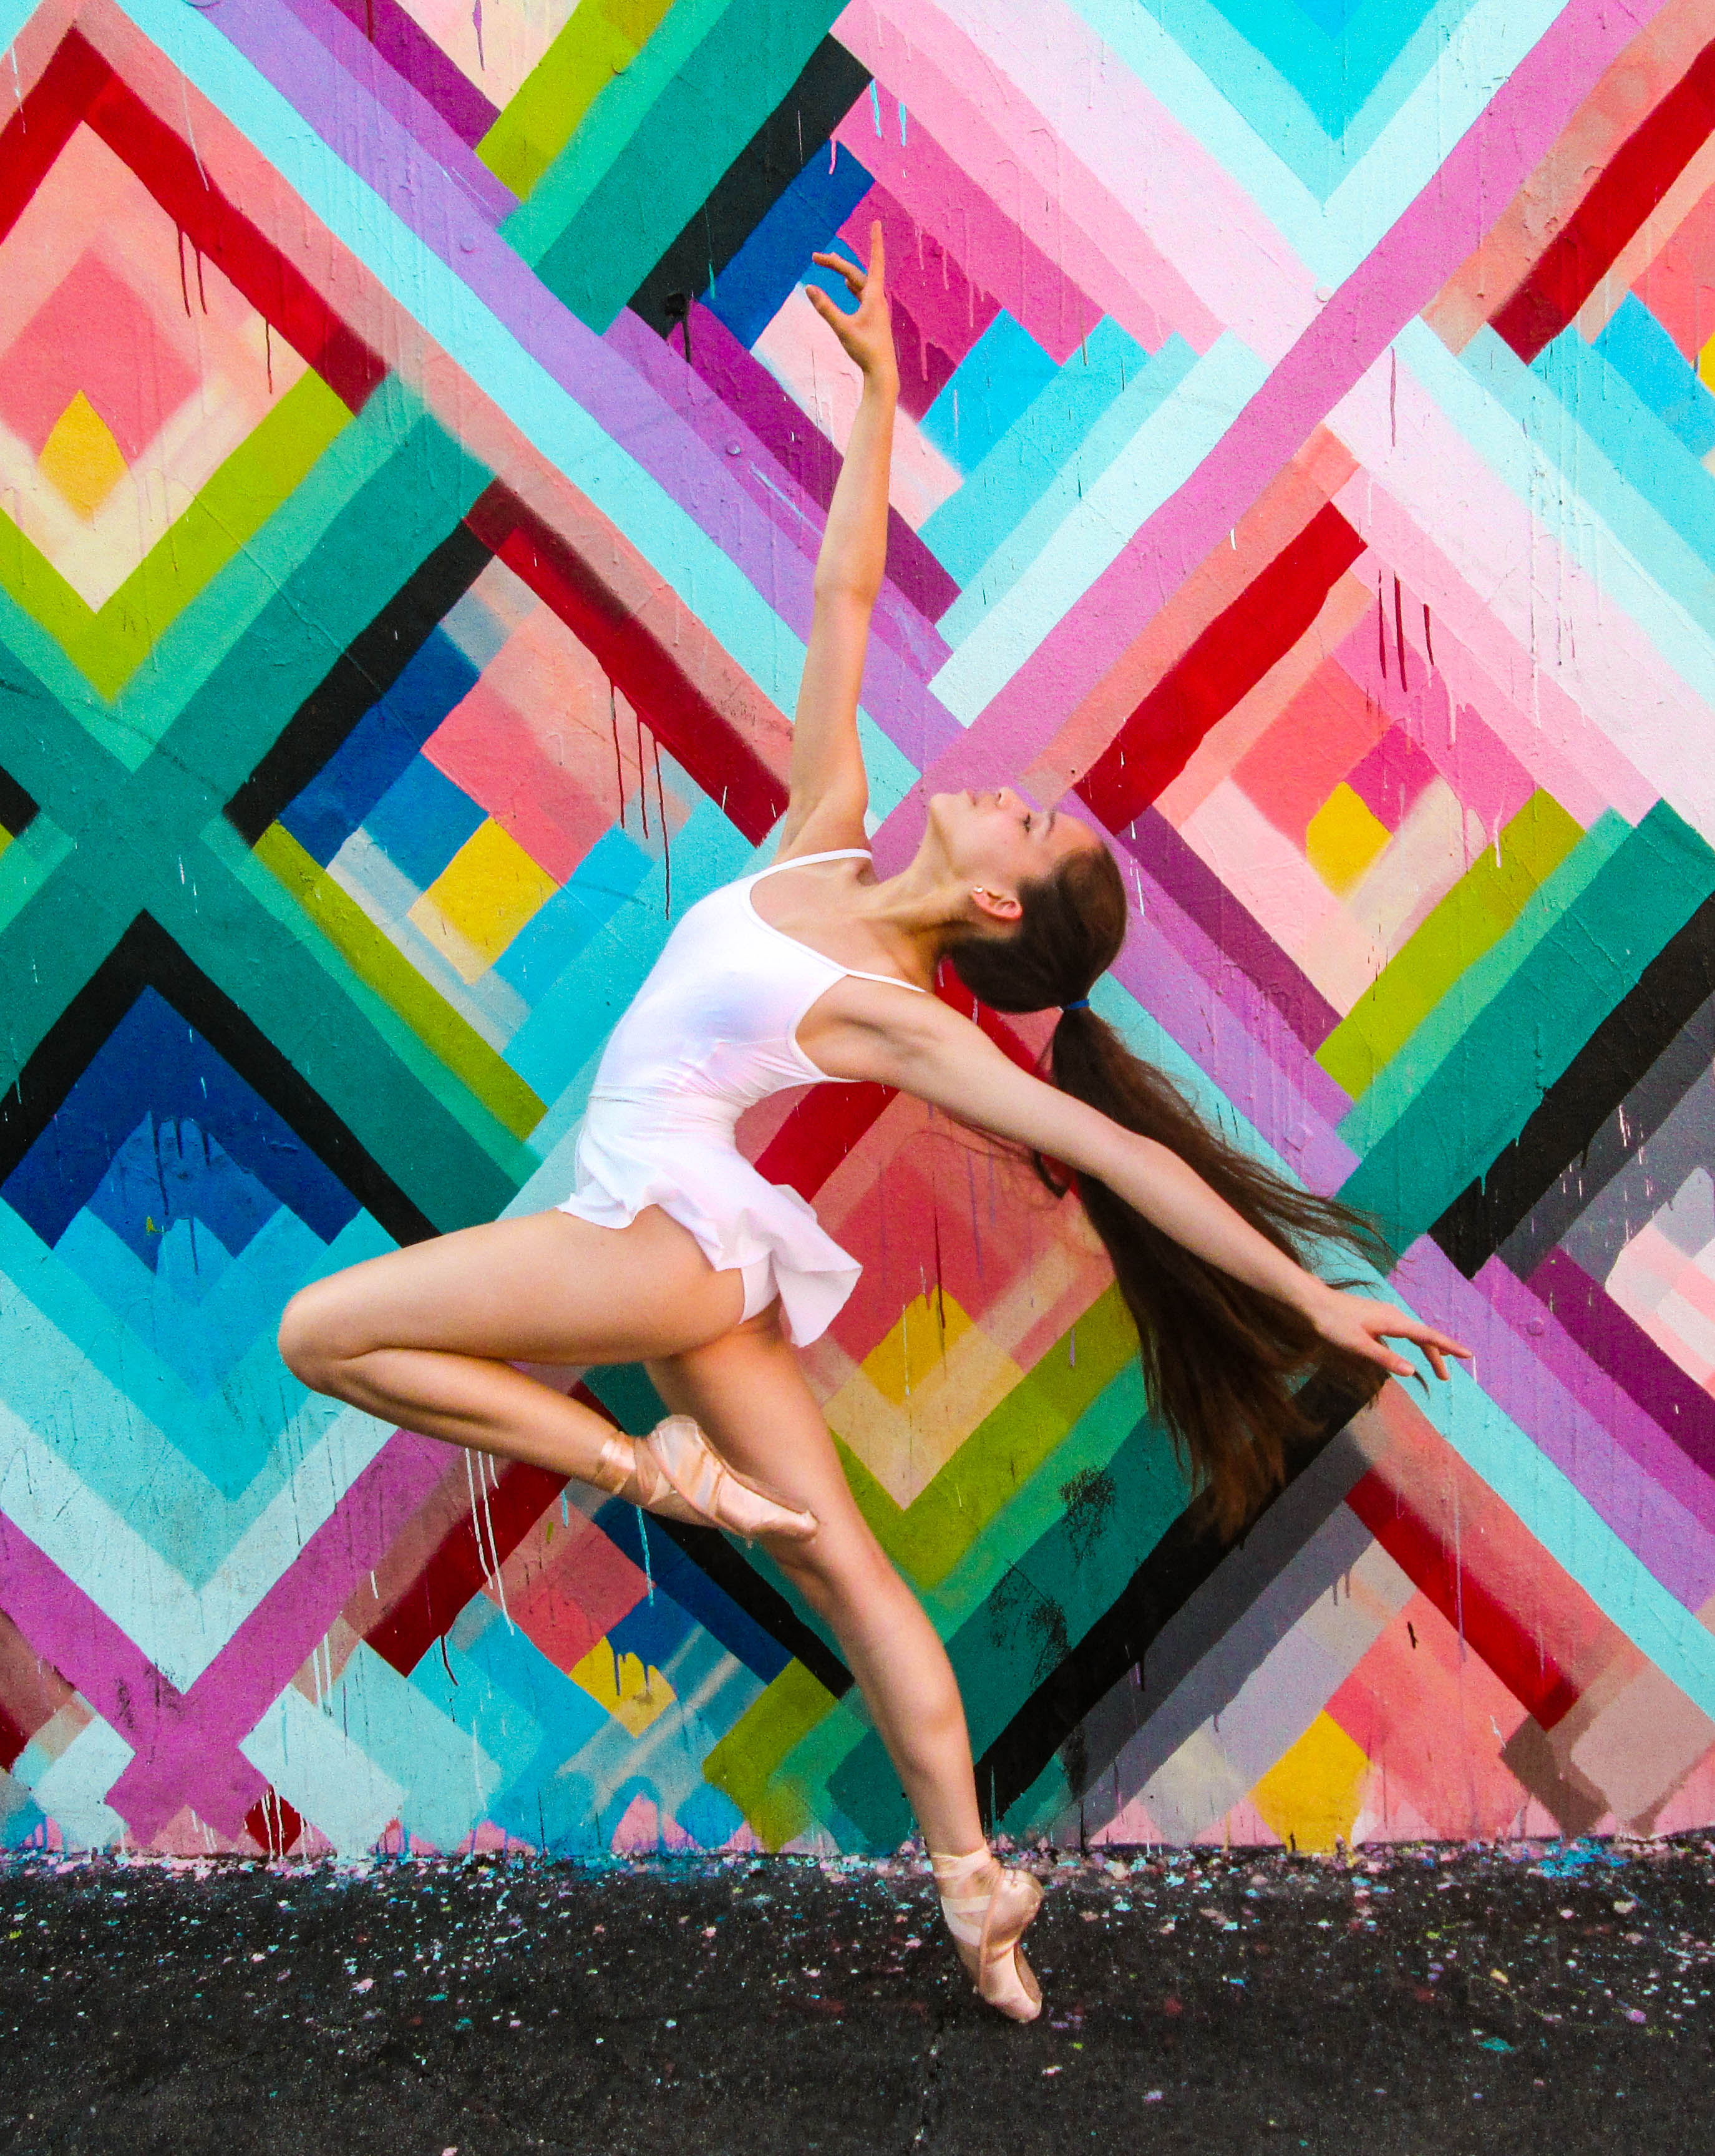 wynwood walls miami florida things to do where to go ballet dance photo pose inspiration